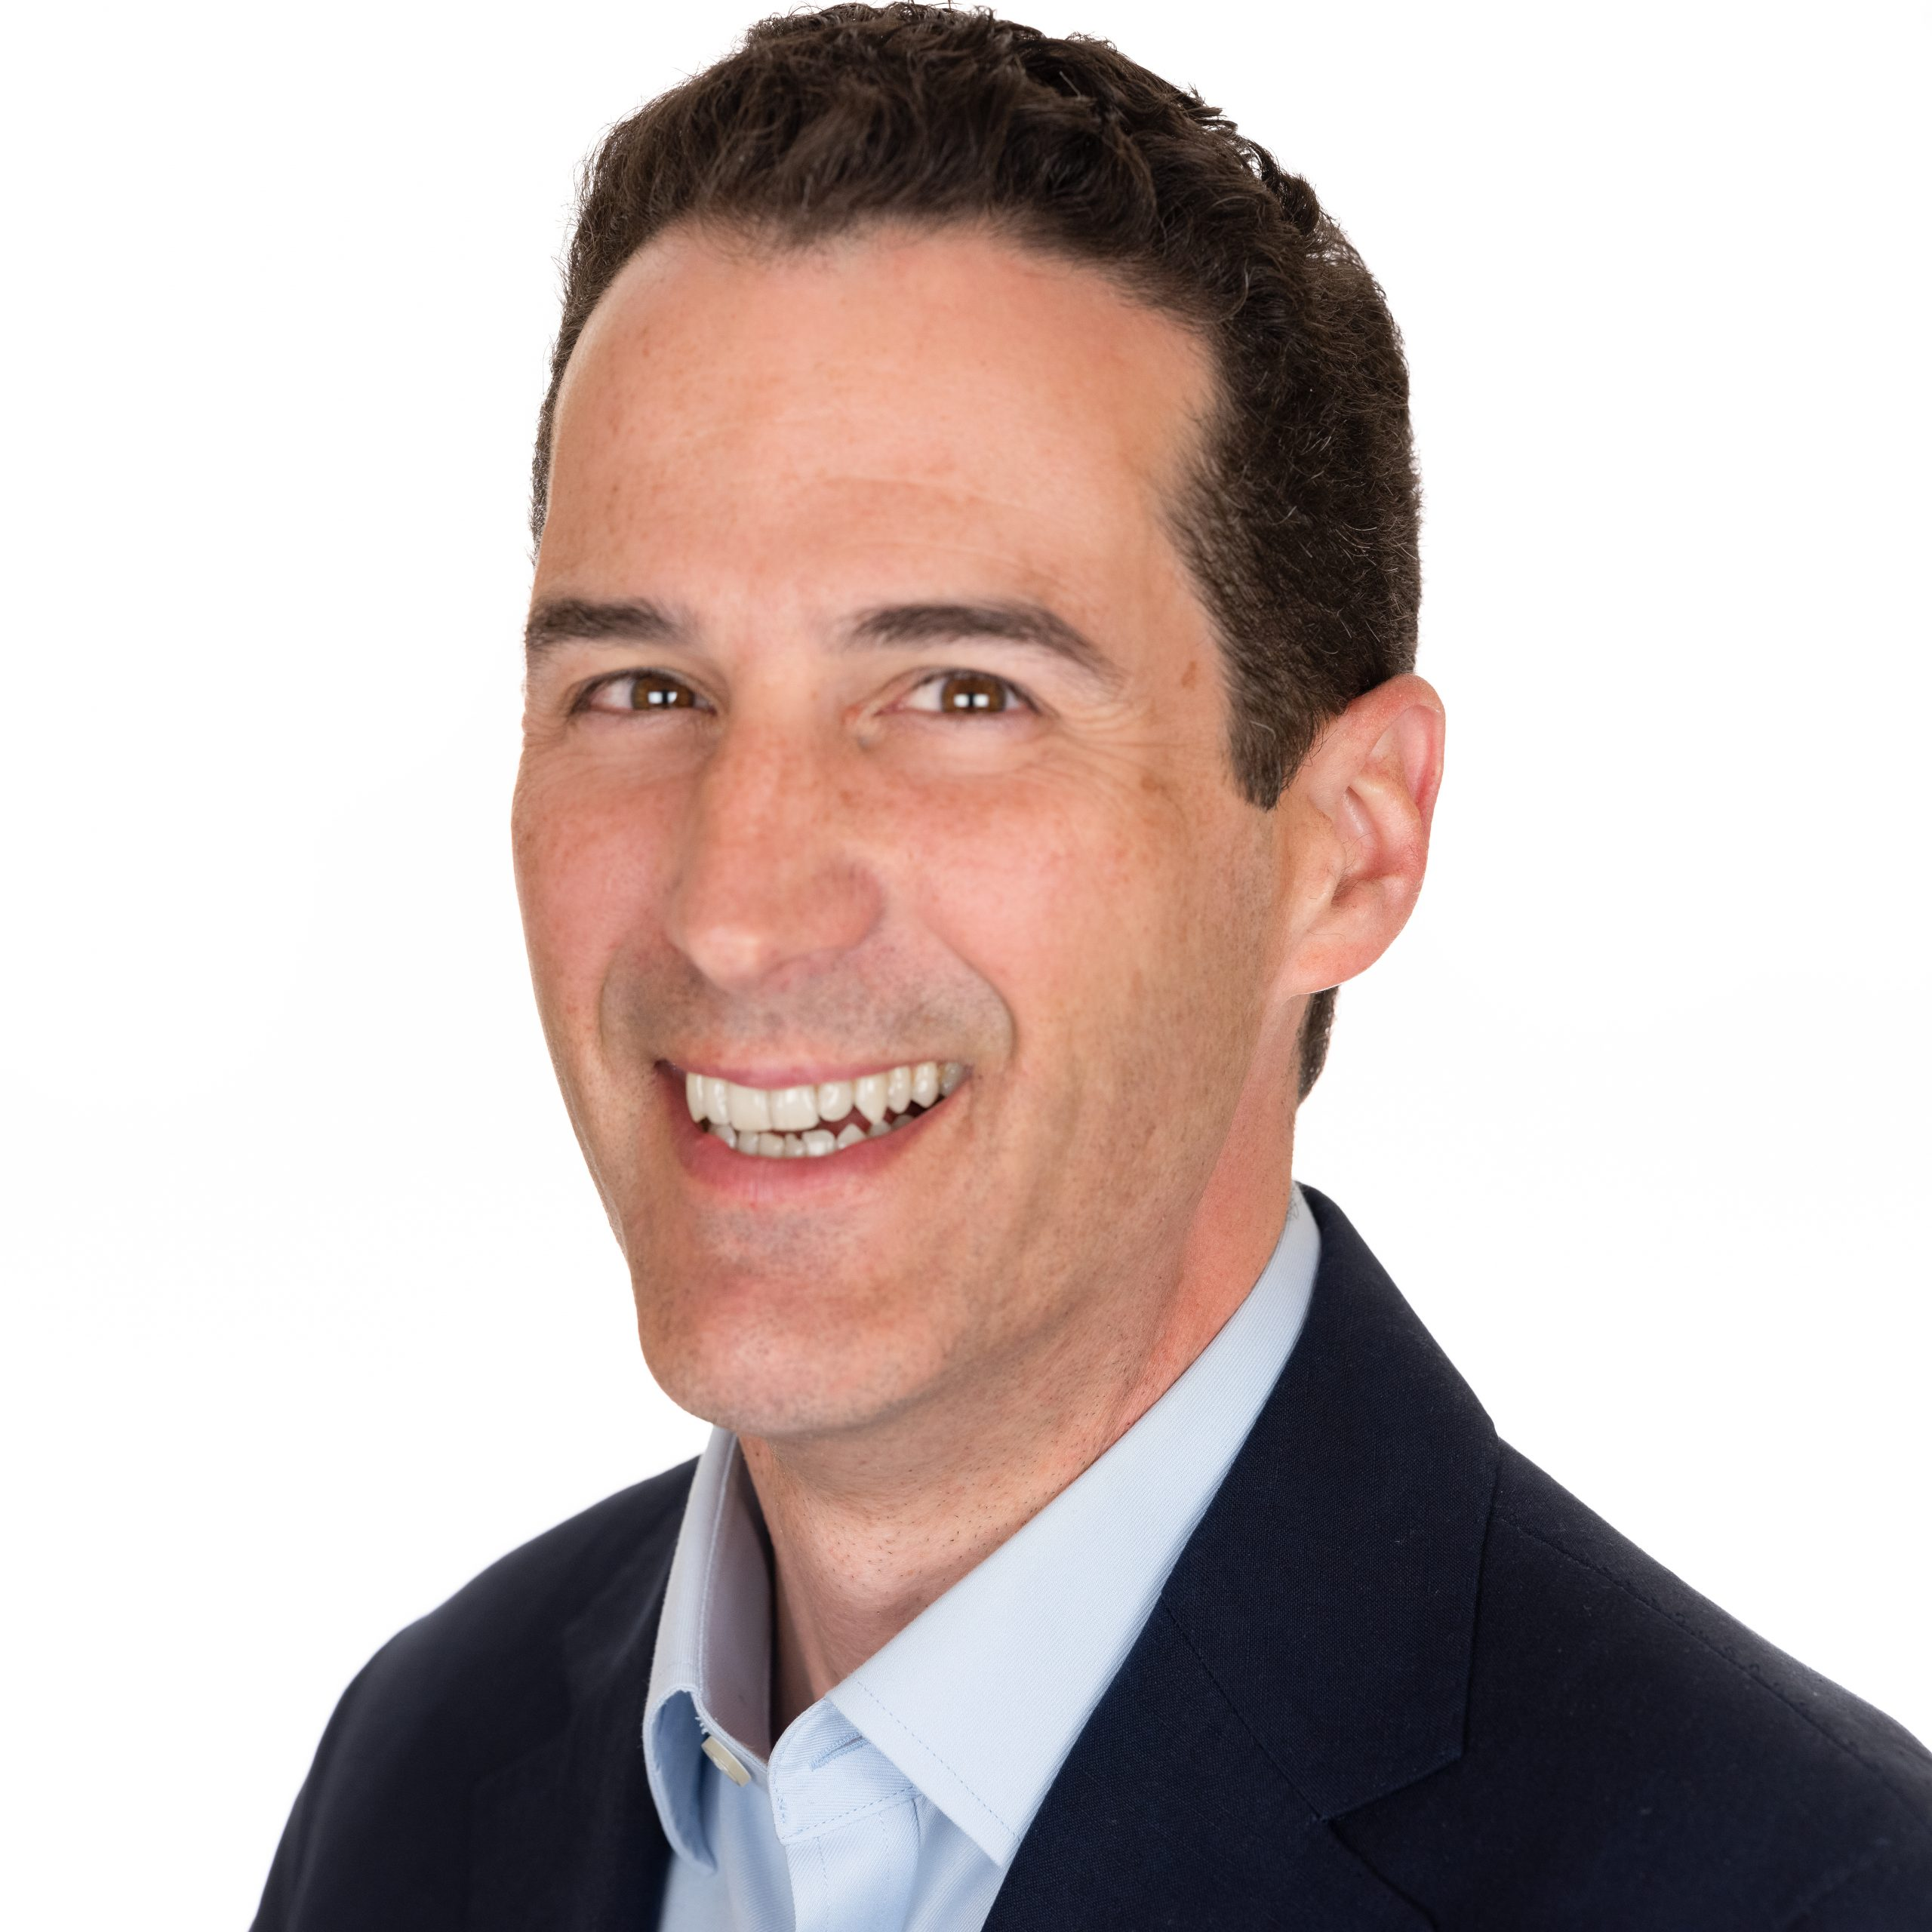 Andy Singer – Andy is a 20-year technology industry veteran. Most recently, he served as VP of Marketing at the network observability company Kentik. Prior to that, he held marketing leadership roles at EnSilo, Guardicore, Symantec and Check Point Software Technologies.